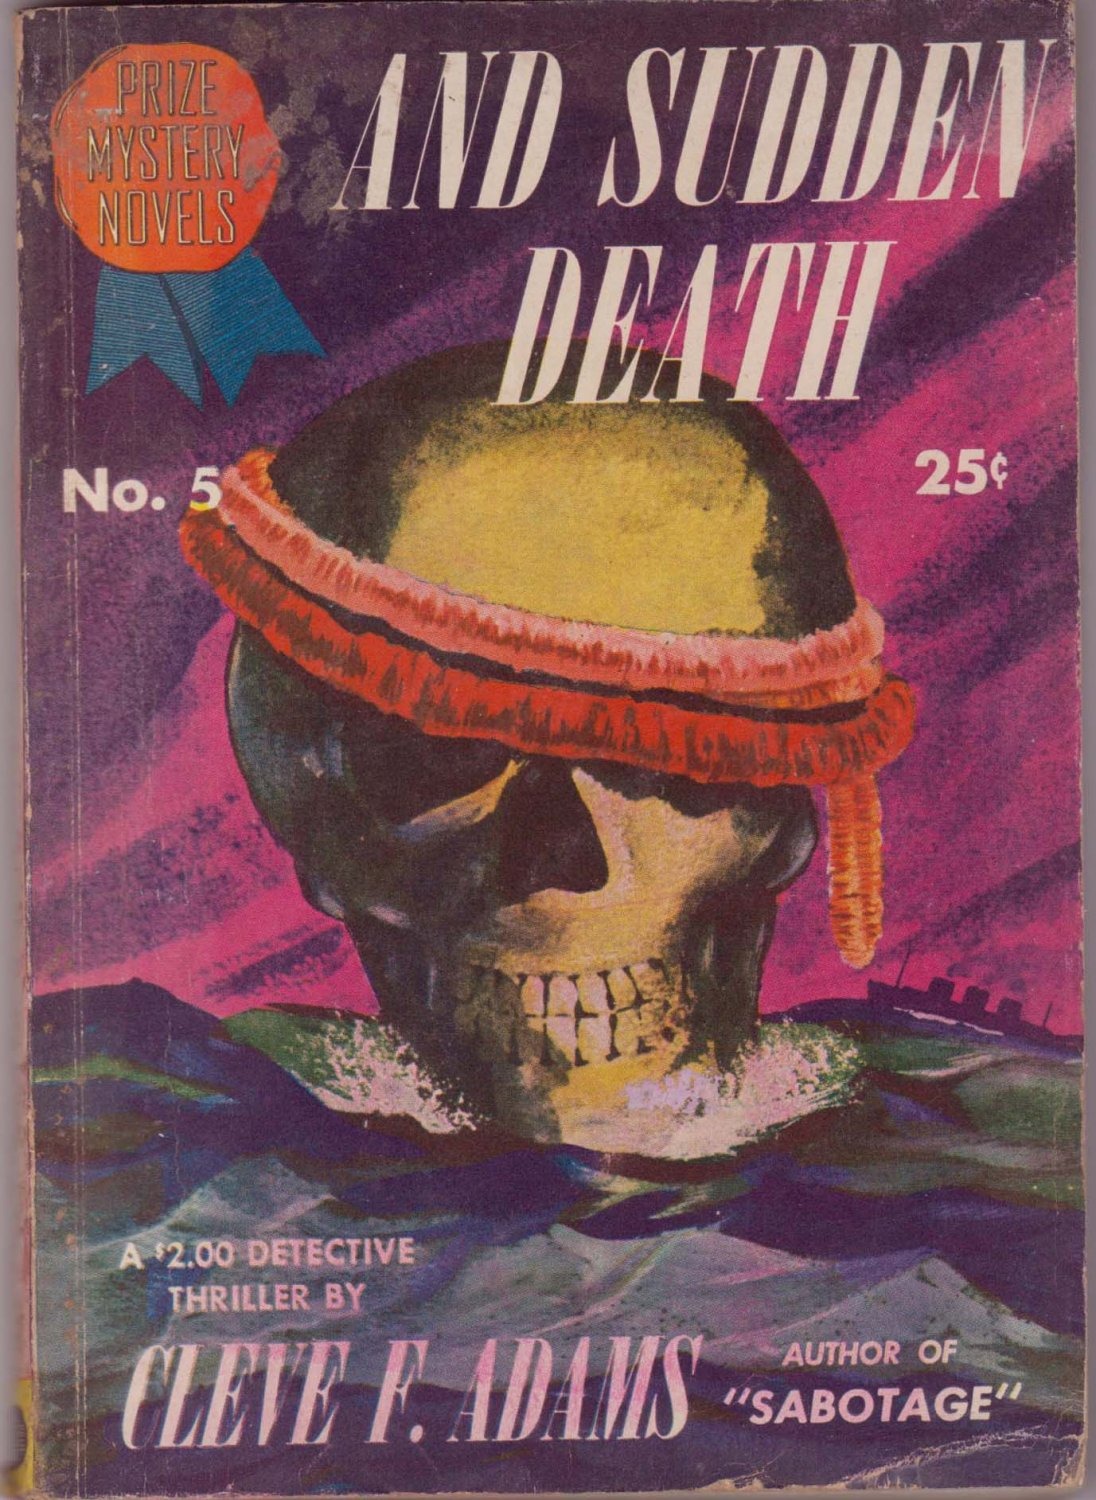 And Sudden Death, Cleve F. Adams, Vintage Paperback Book, Digest, Prize Mystery Novels #5, Murder